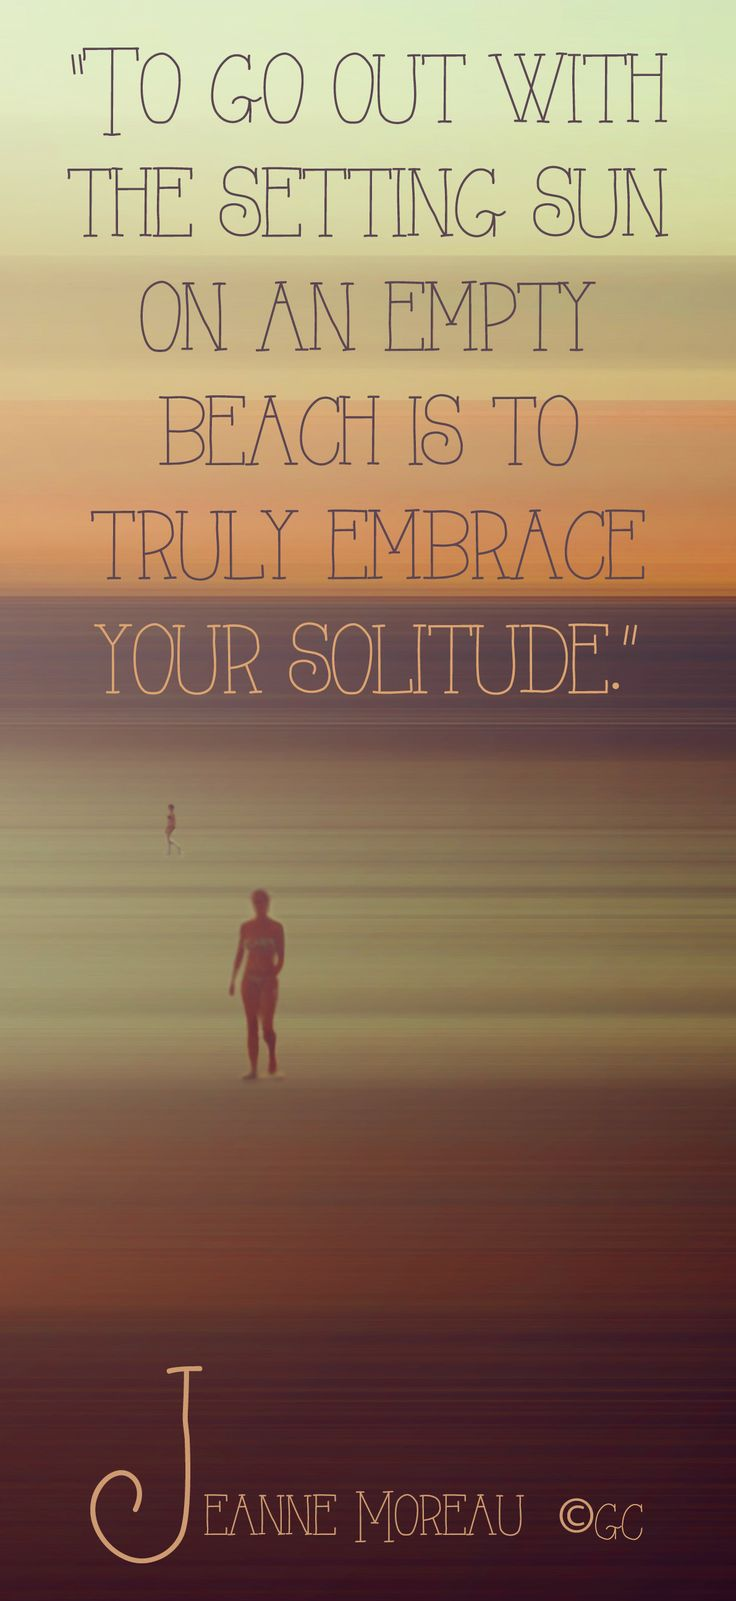 Quotes On Solitude 184 Best In My Solitude Images On Pinterest  Solitude Thoughts